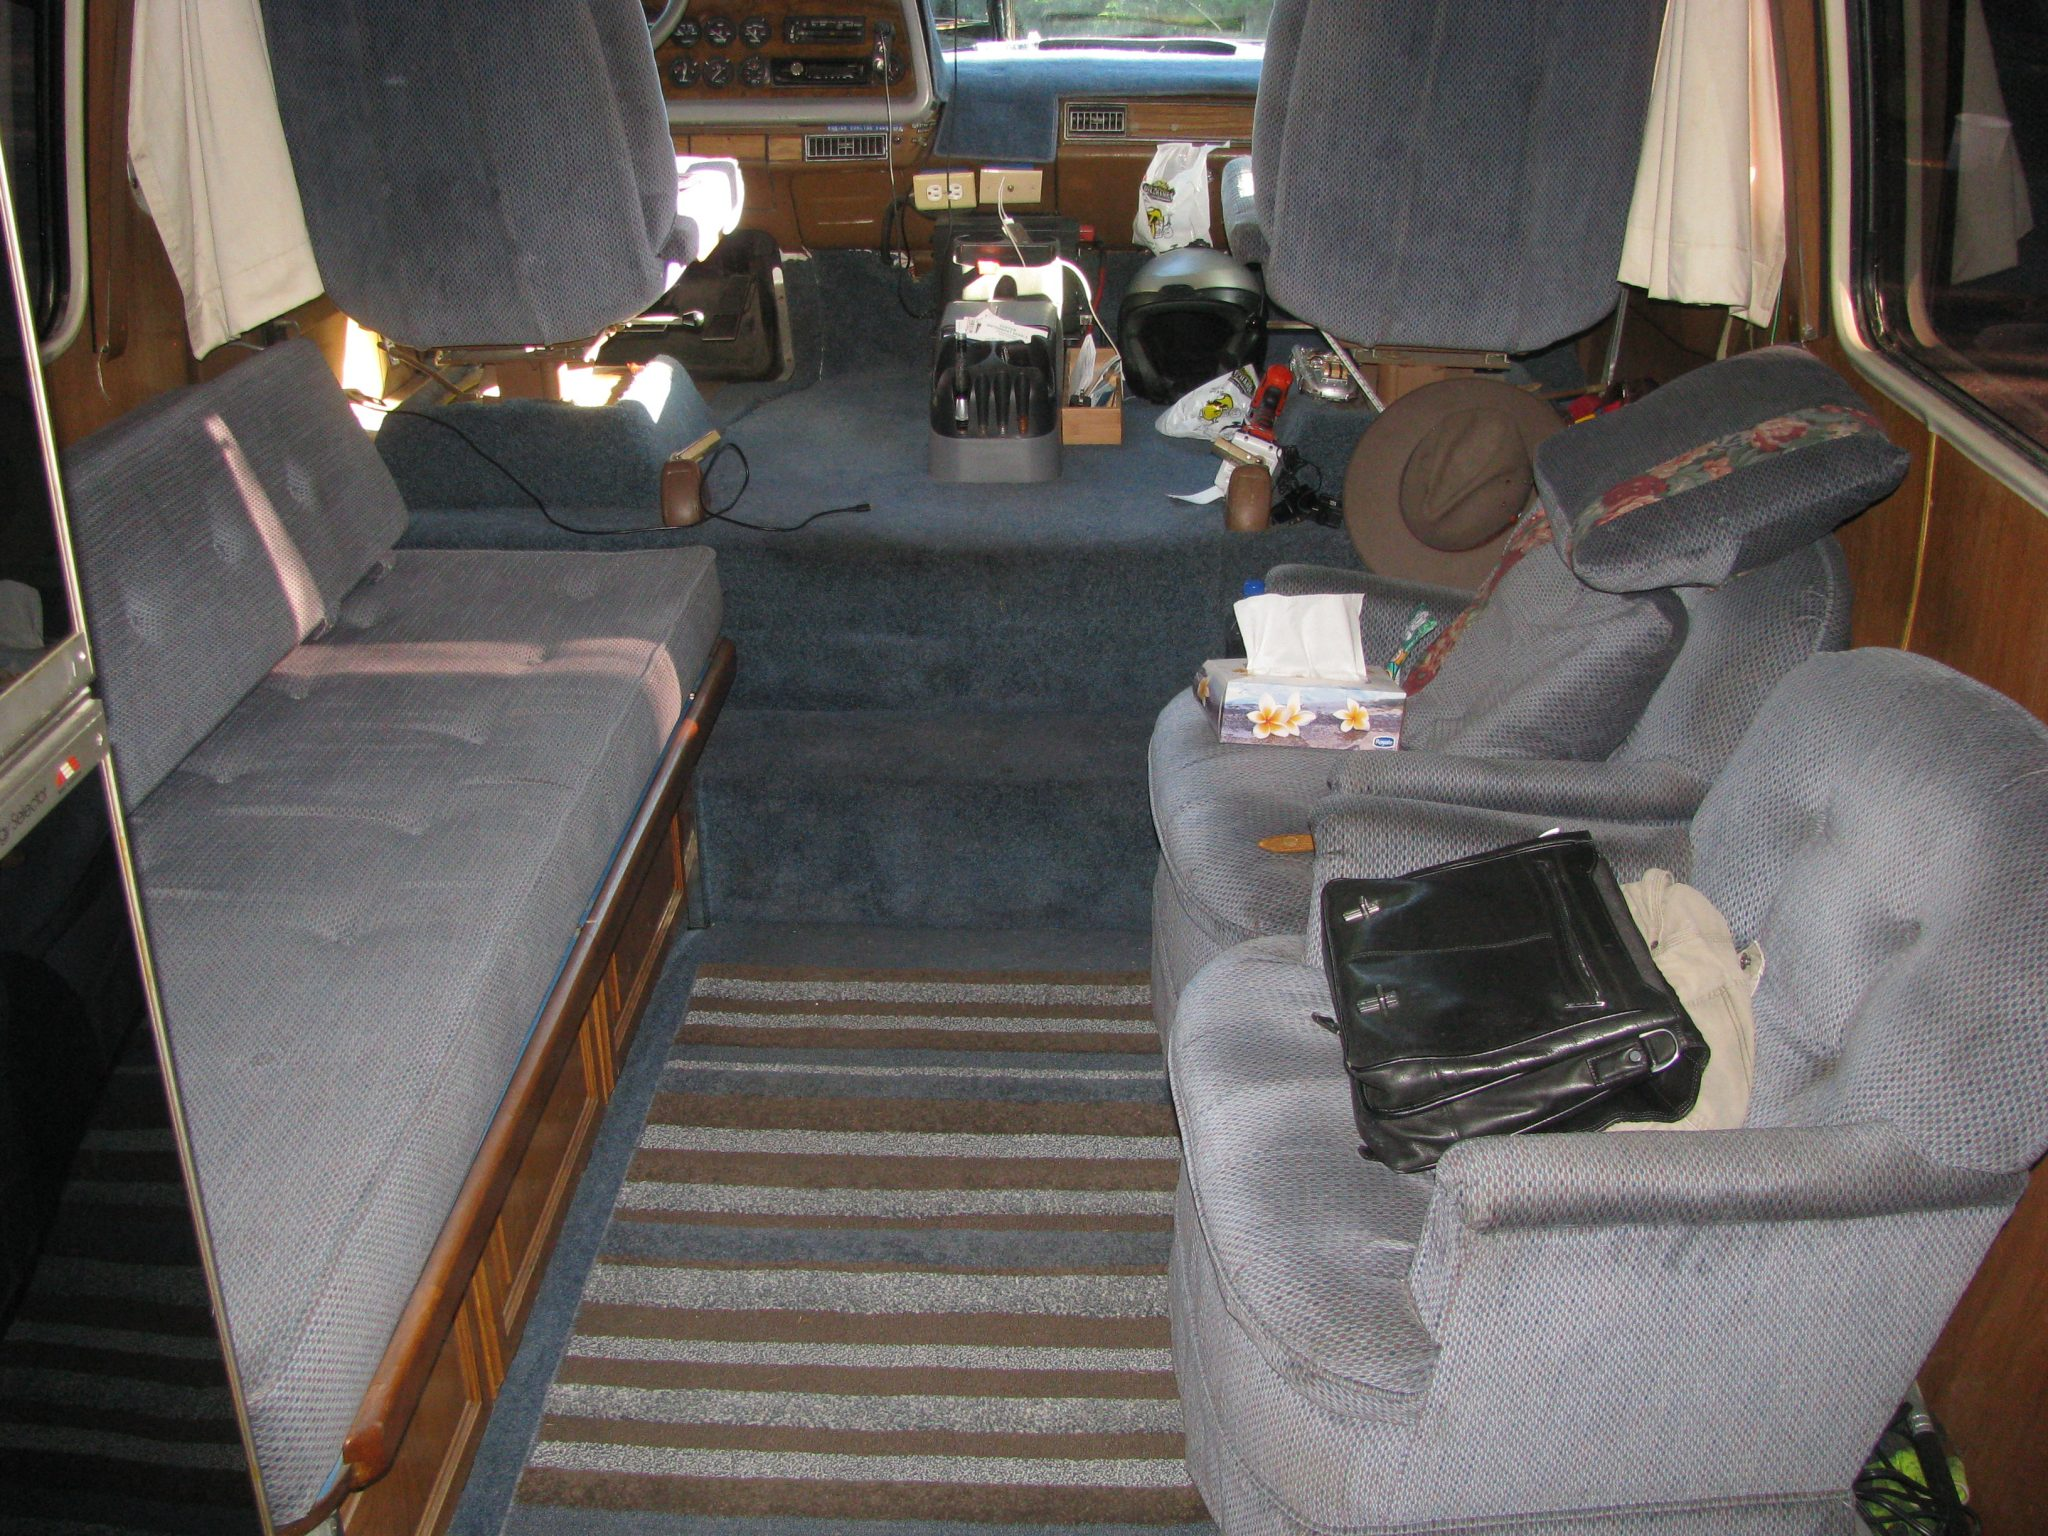 1978 GMC 26FT Motorhome For Sale in Victoria, British Columbia